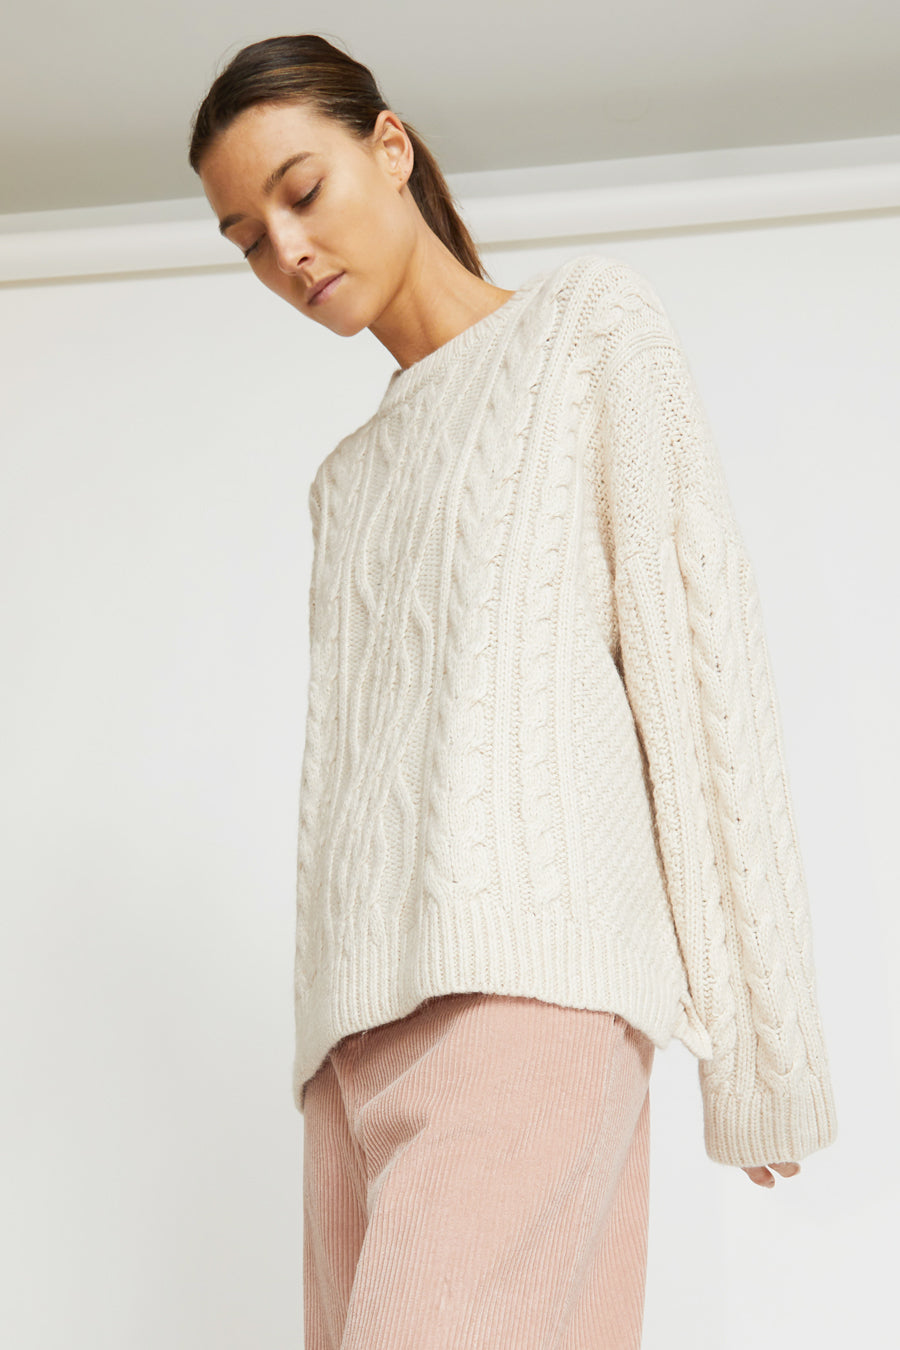 Mijeong Park Oversized Cableknit Sweater in Cream